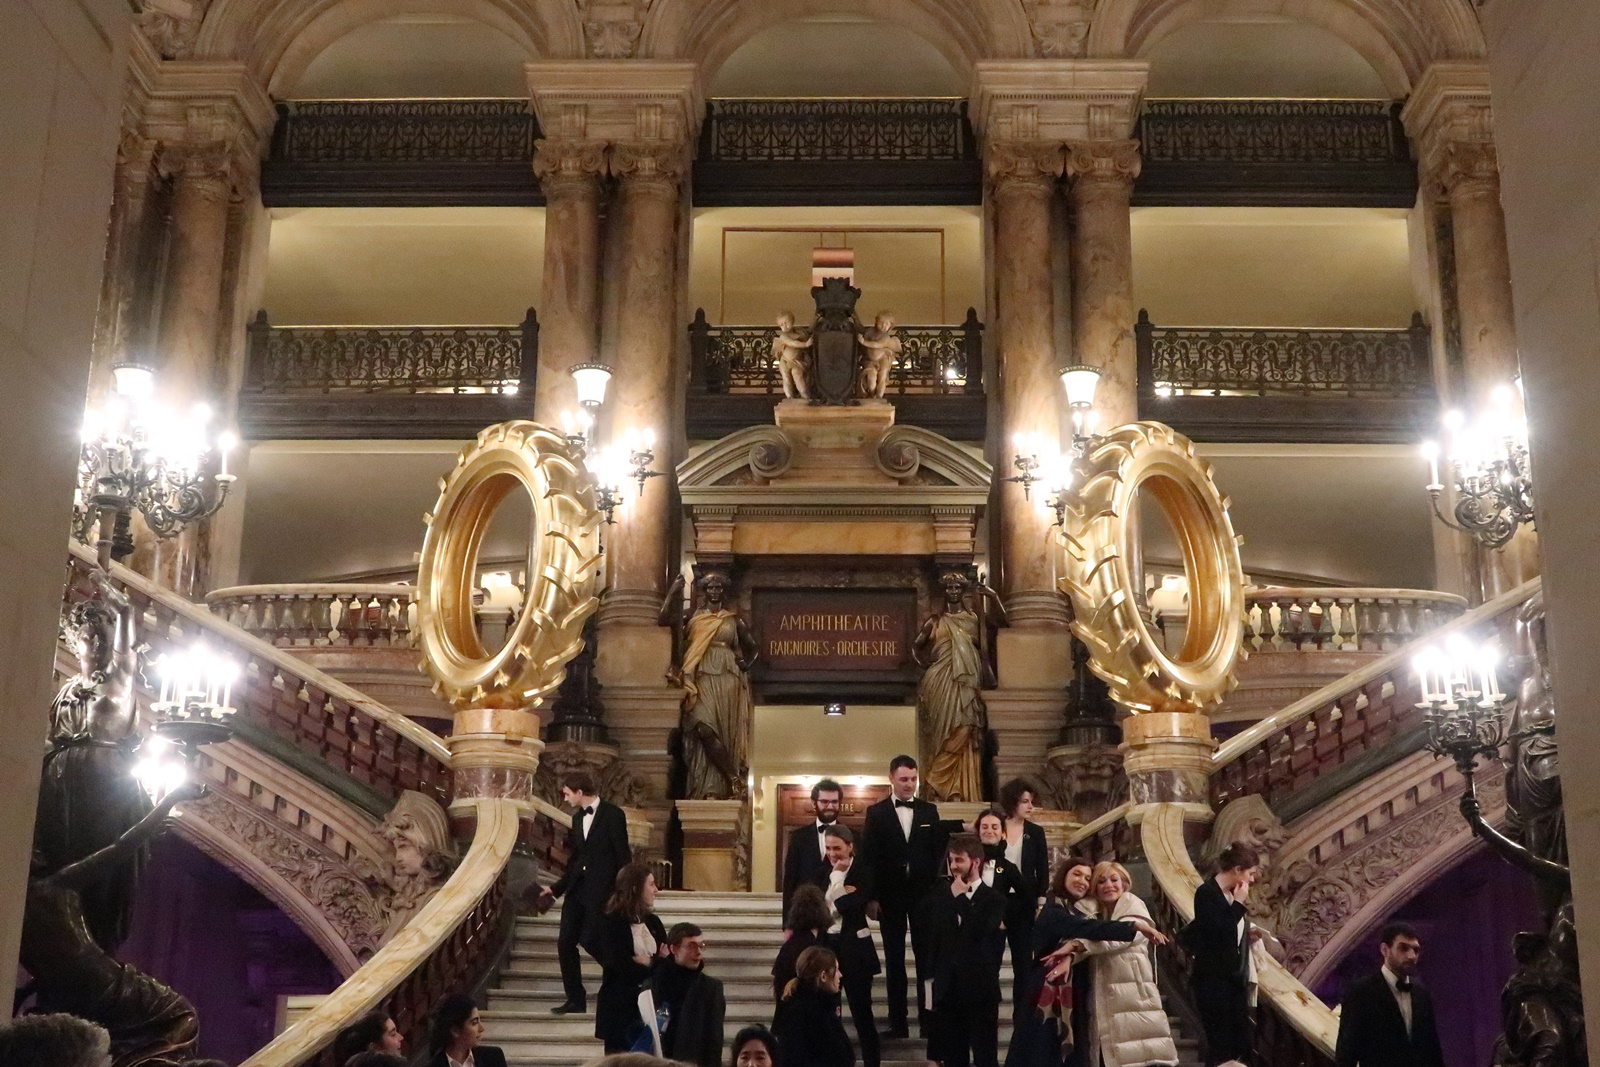 Staircase golden wheel opera palais garnier paris france